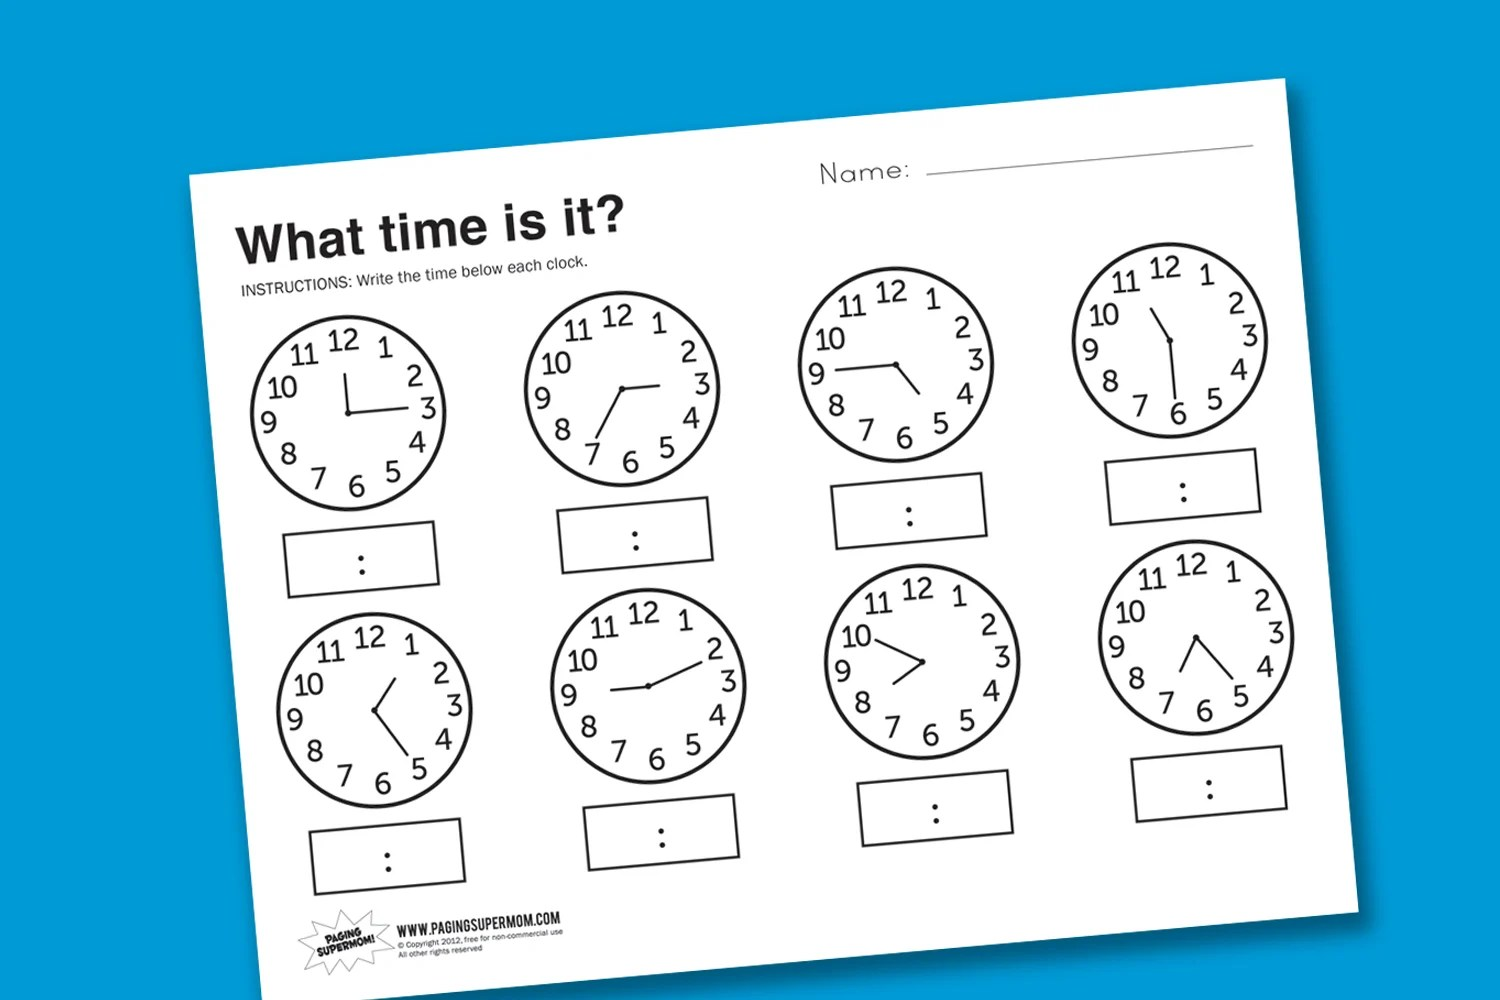 Worksheet About What Time Is It